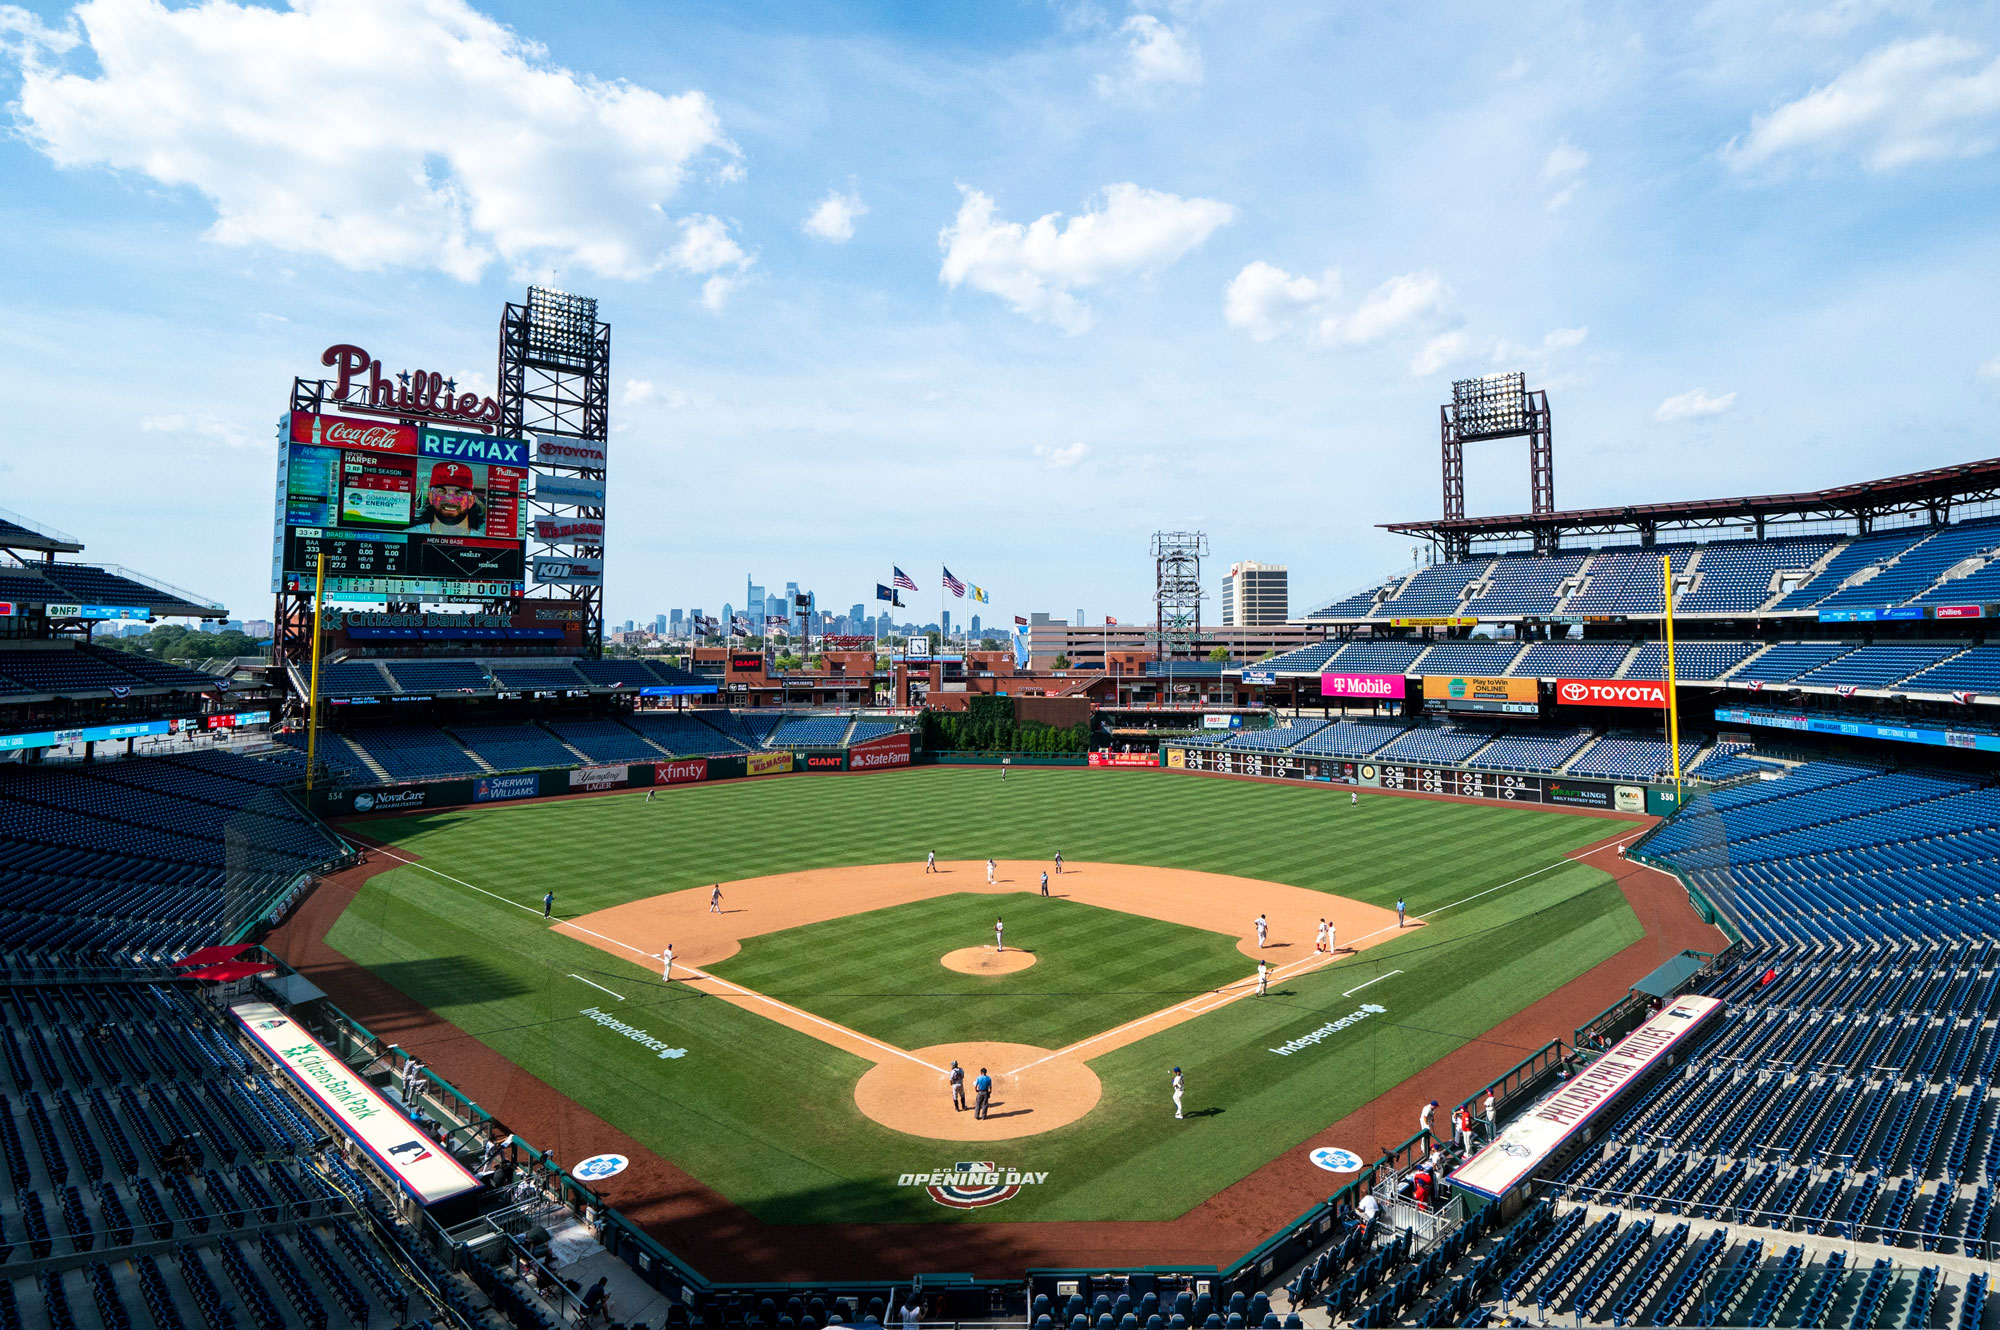 The Miami Marlins and the Philadelphia Phillies face off during a game at Citizens Bank Park on July 26 in Philadelphia.